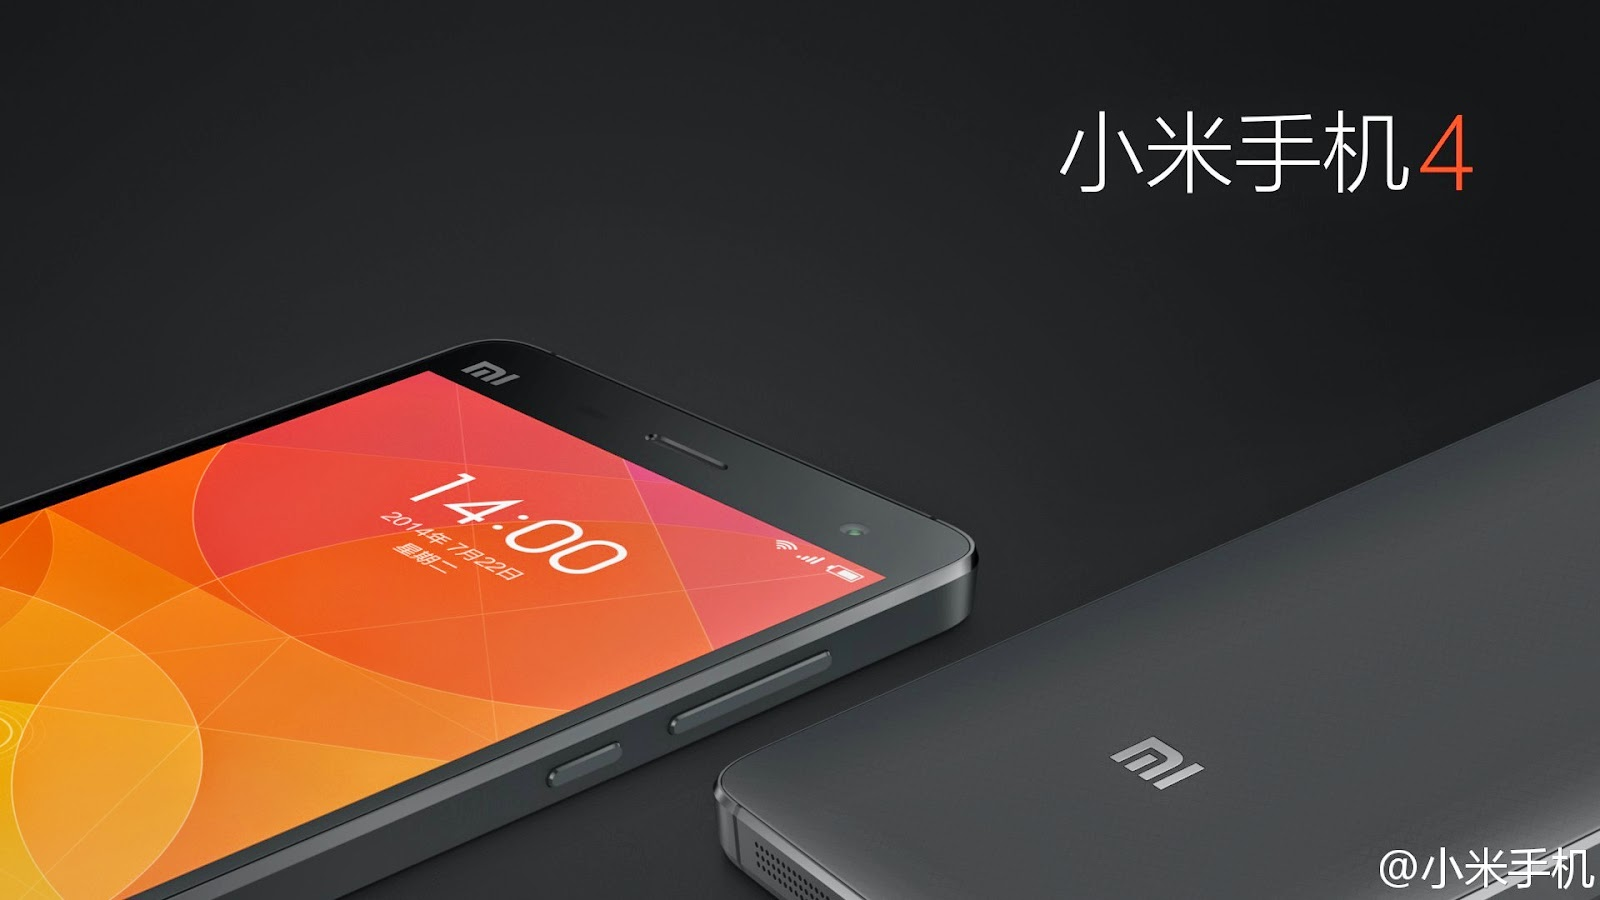 Xiaomi Mi 4 Official Metal Frame Great Specs 8mp Front Camera Bamboo As Expected Revealed Today Its Next Flagship The Just Introduced At A Launch Event In Beijing And Lookerwe Dont Have